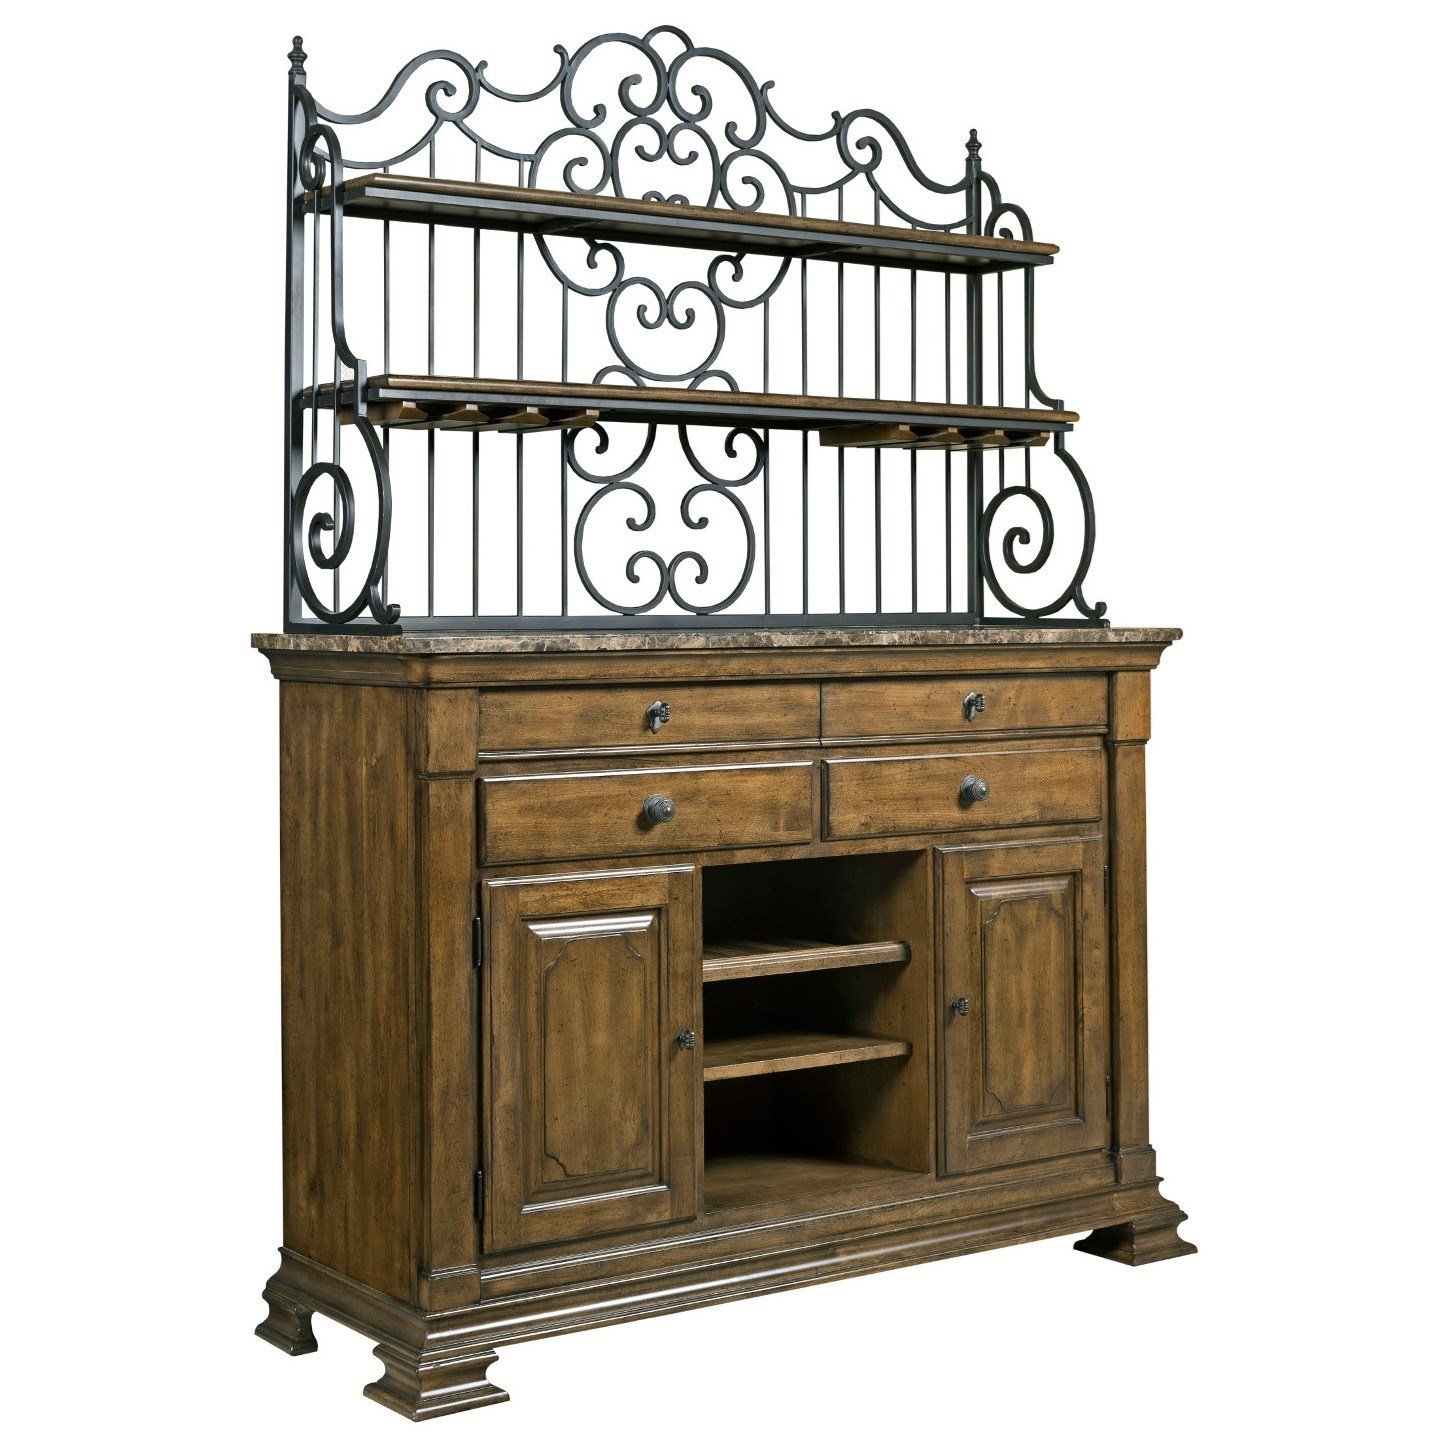 Solid wood sideboard with marble top and wrought iron